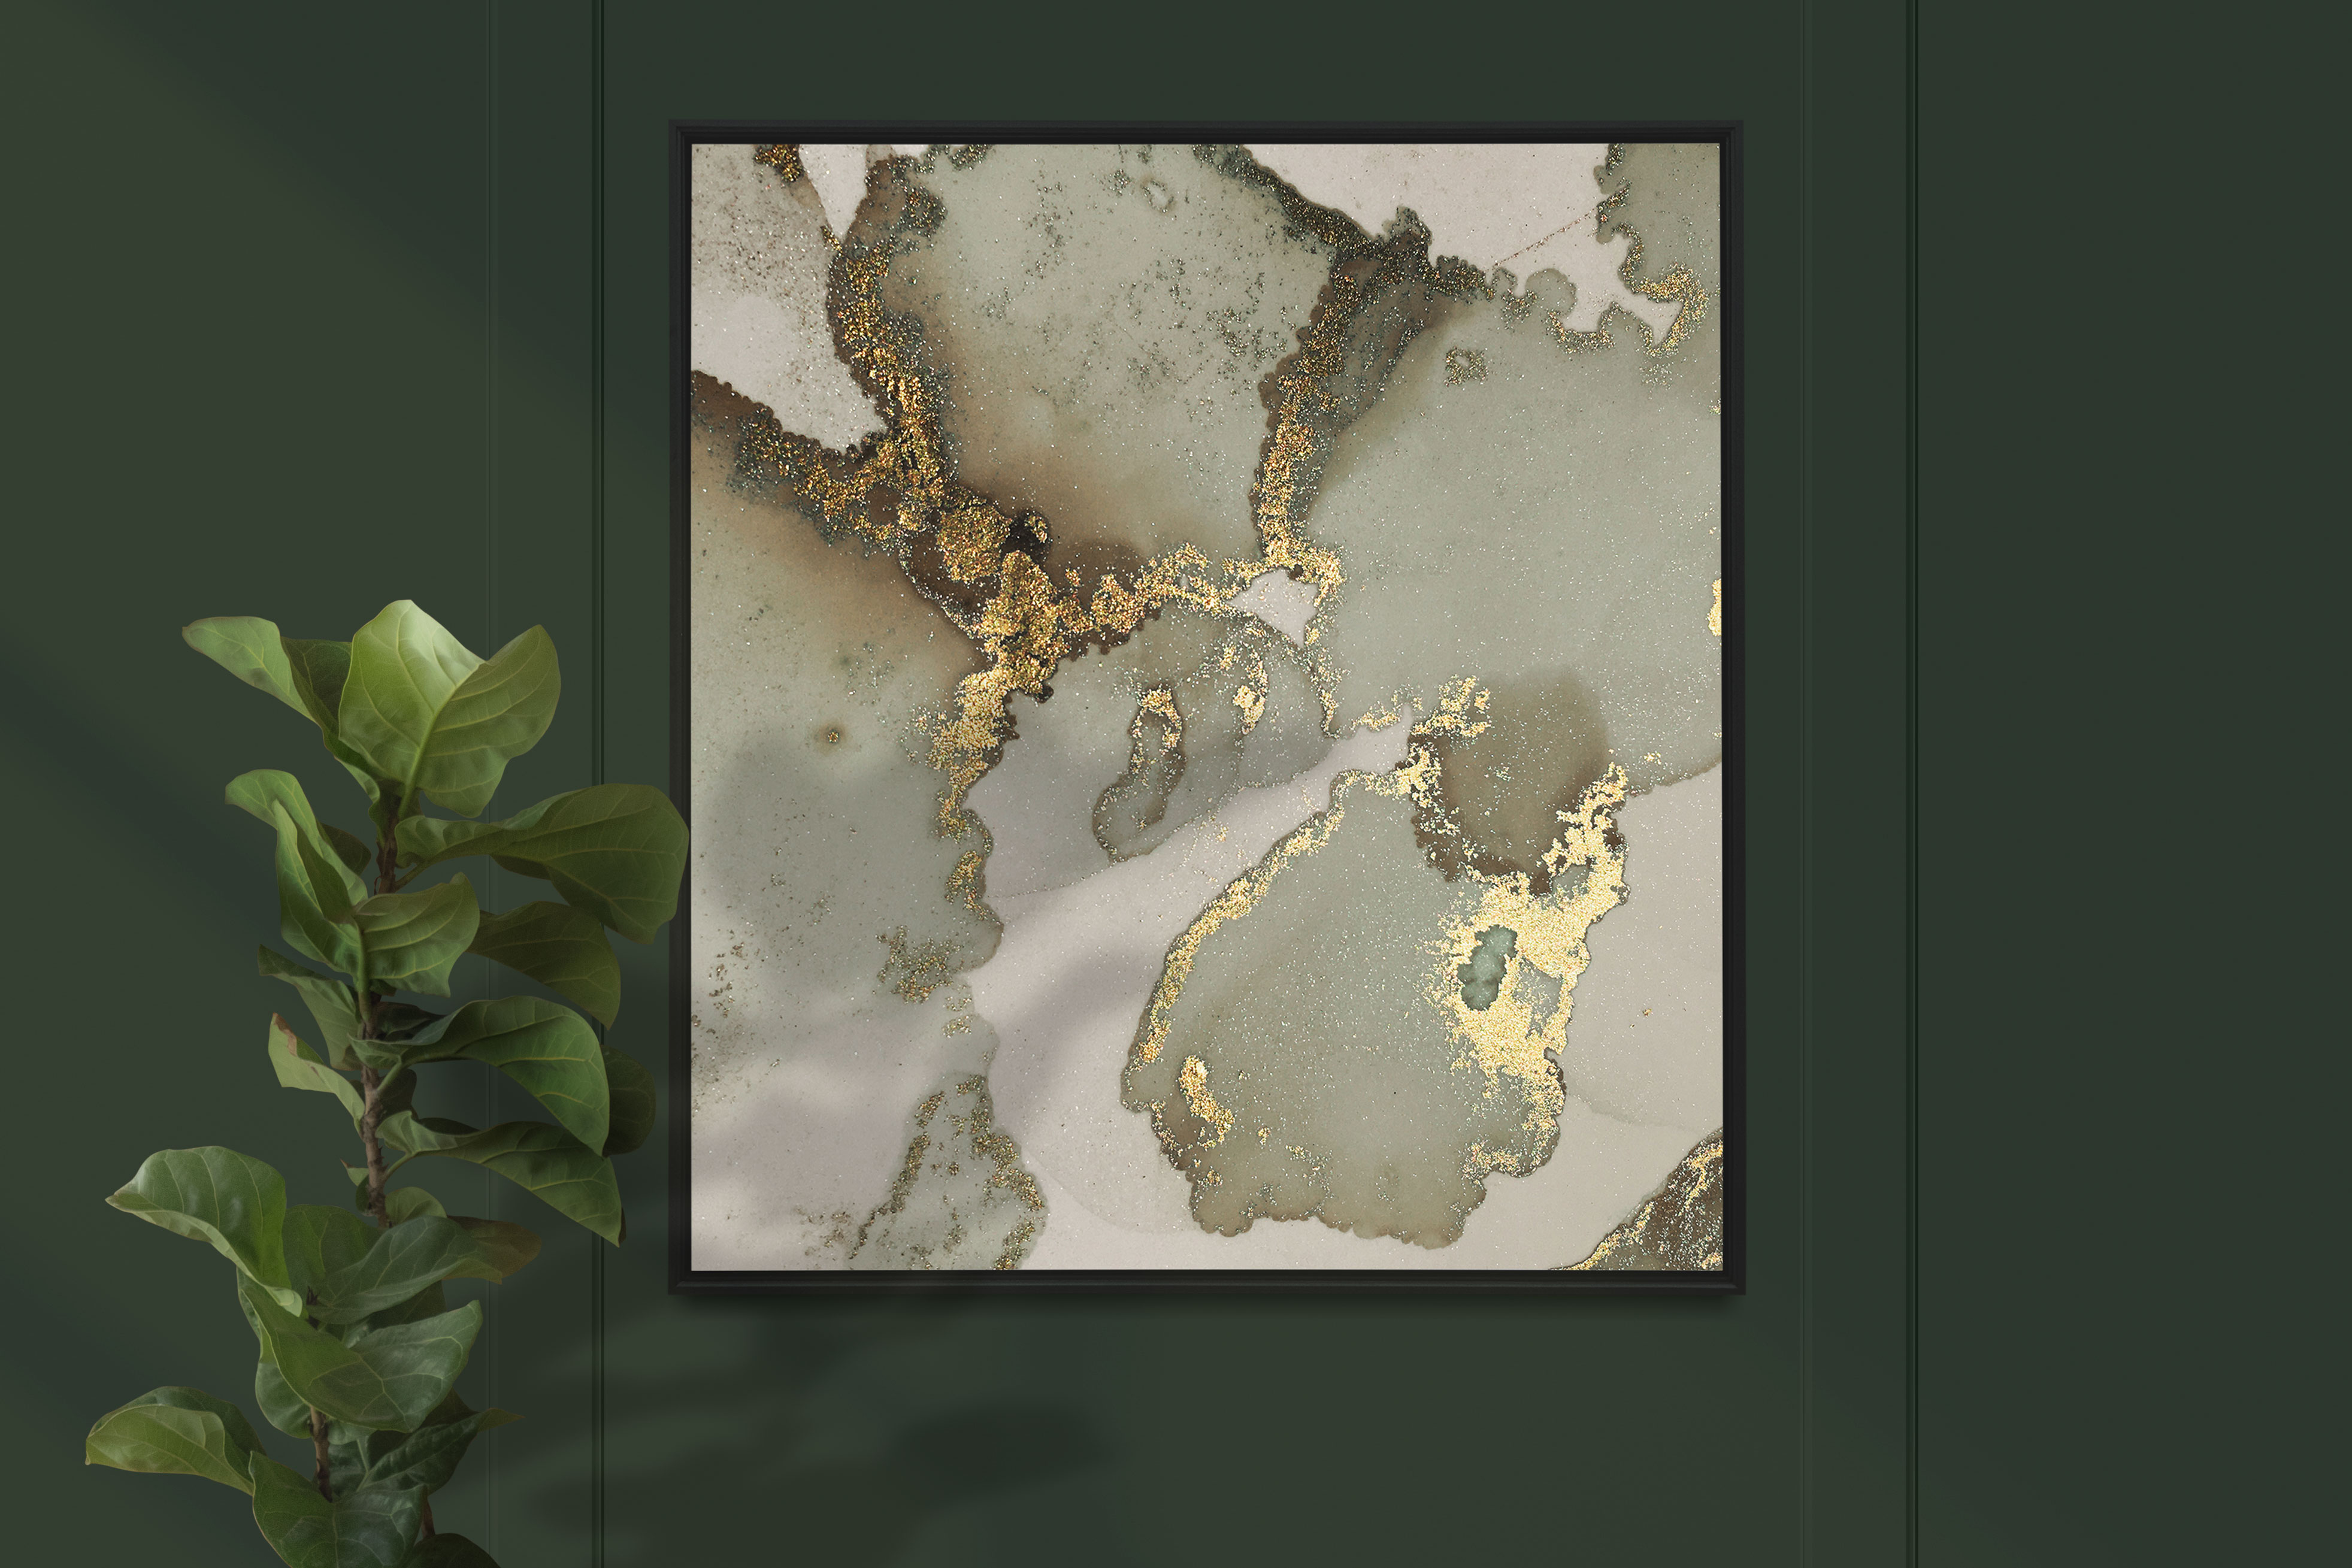 Gold Alcohol Ink Textures 2